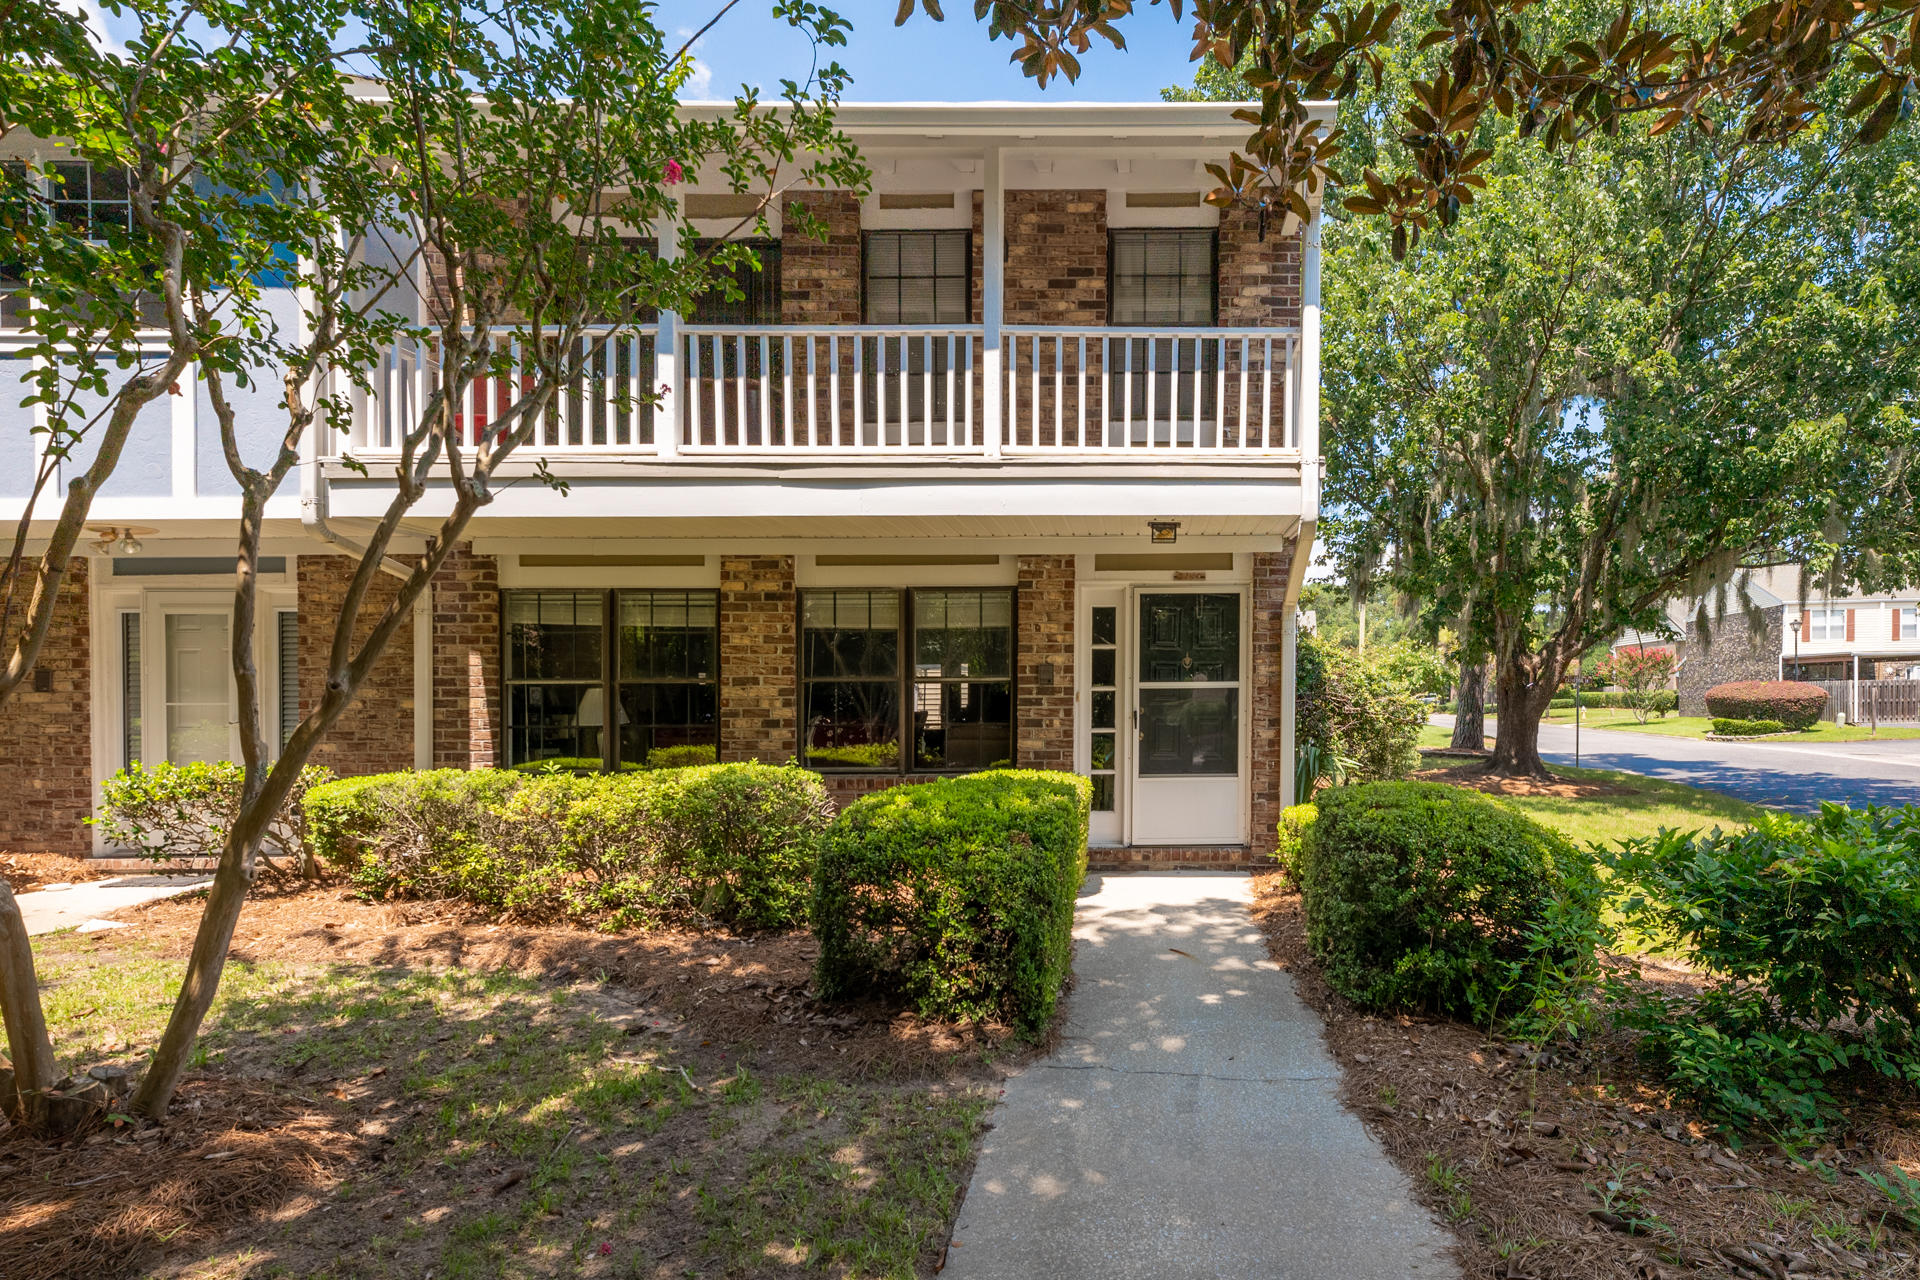 Old Towne Villas Homes For Sale - 2931 Cathedral, Charleston, SC - 0